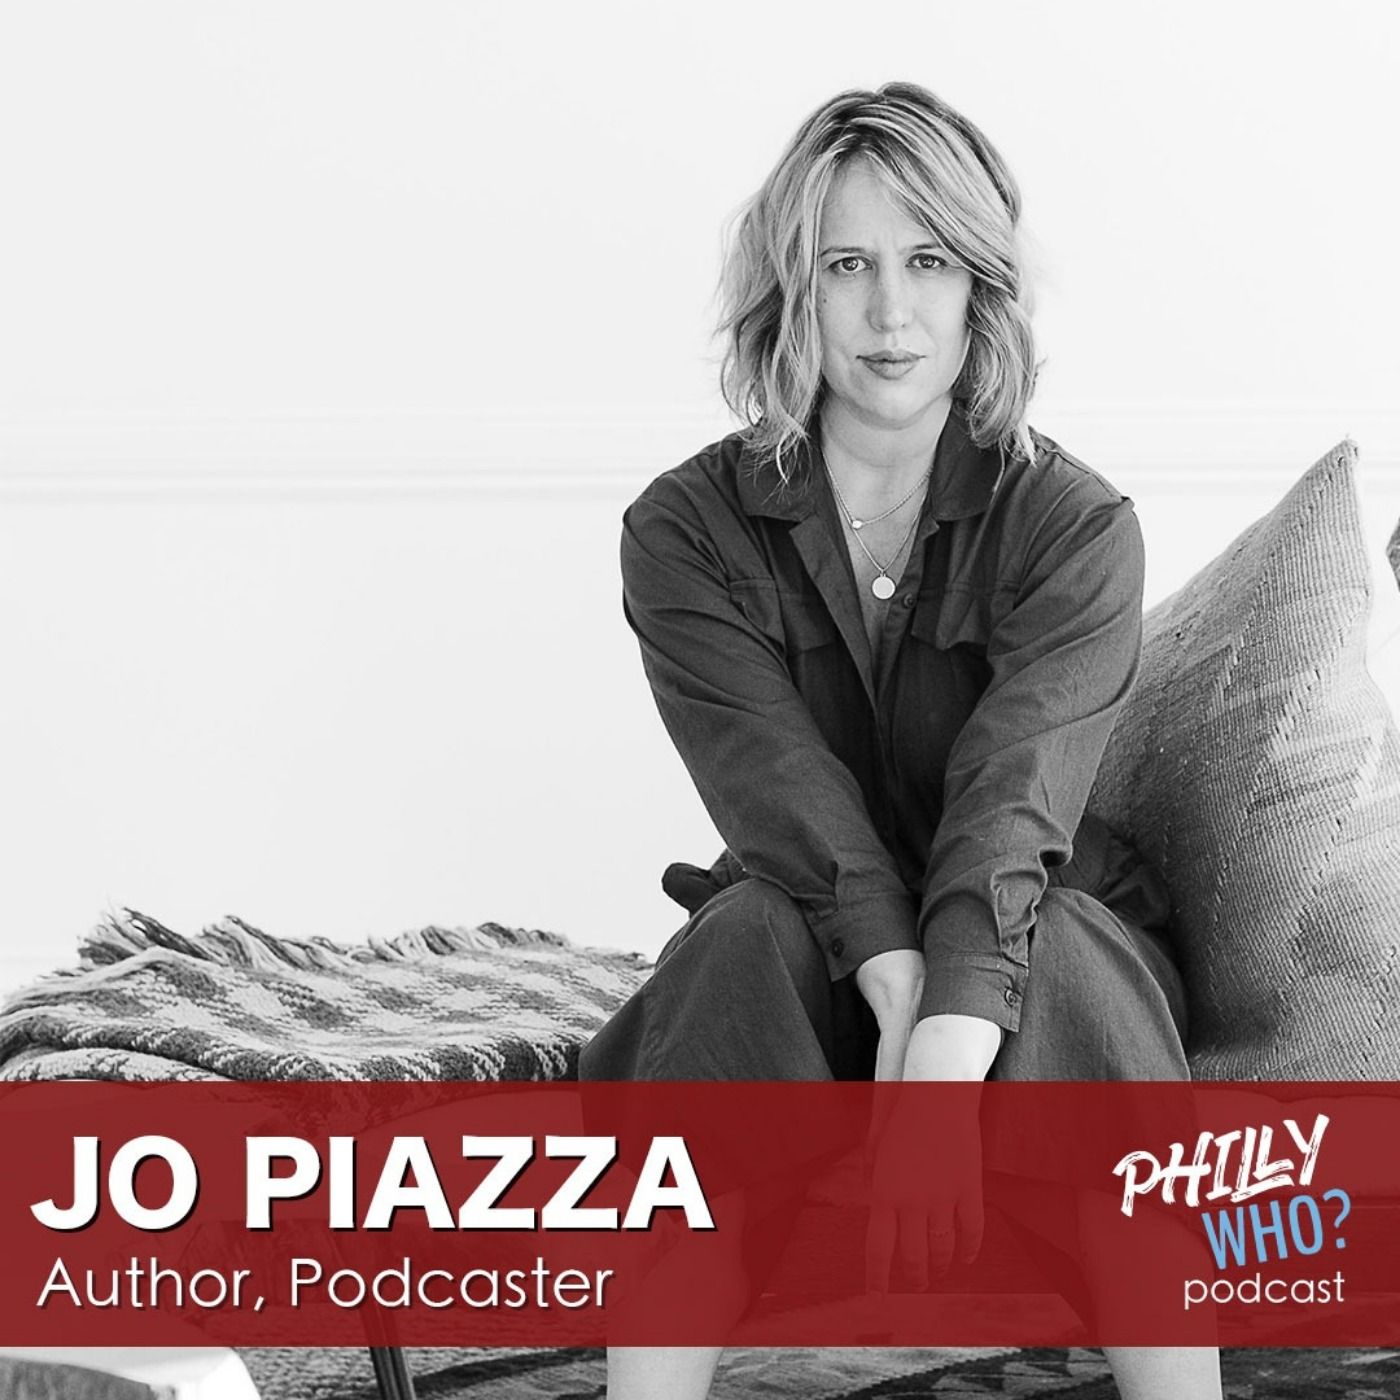 Jo Piazza: Journalist, Novelist, and Podcaster Who Doesn't Need a Cabin in the Woods